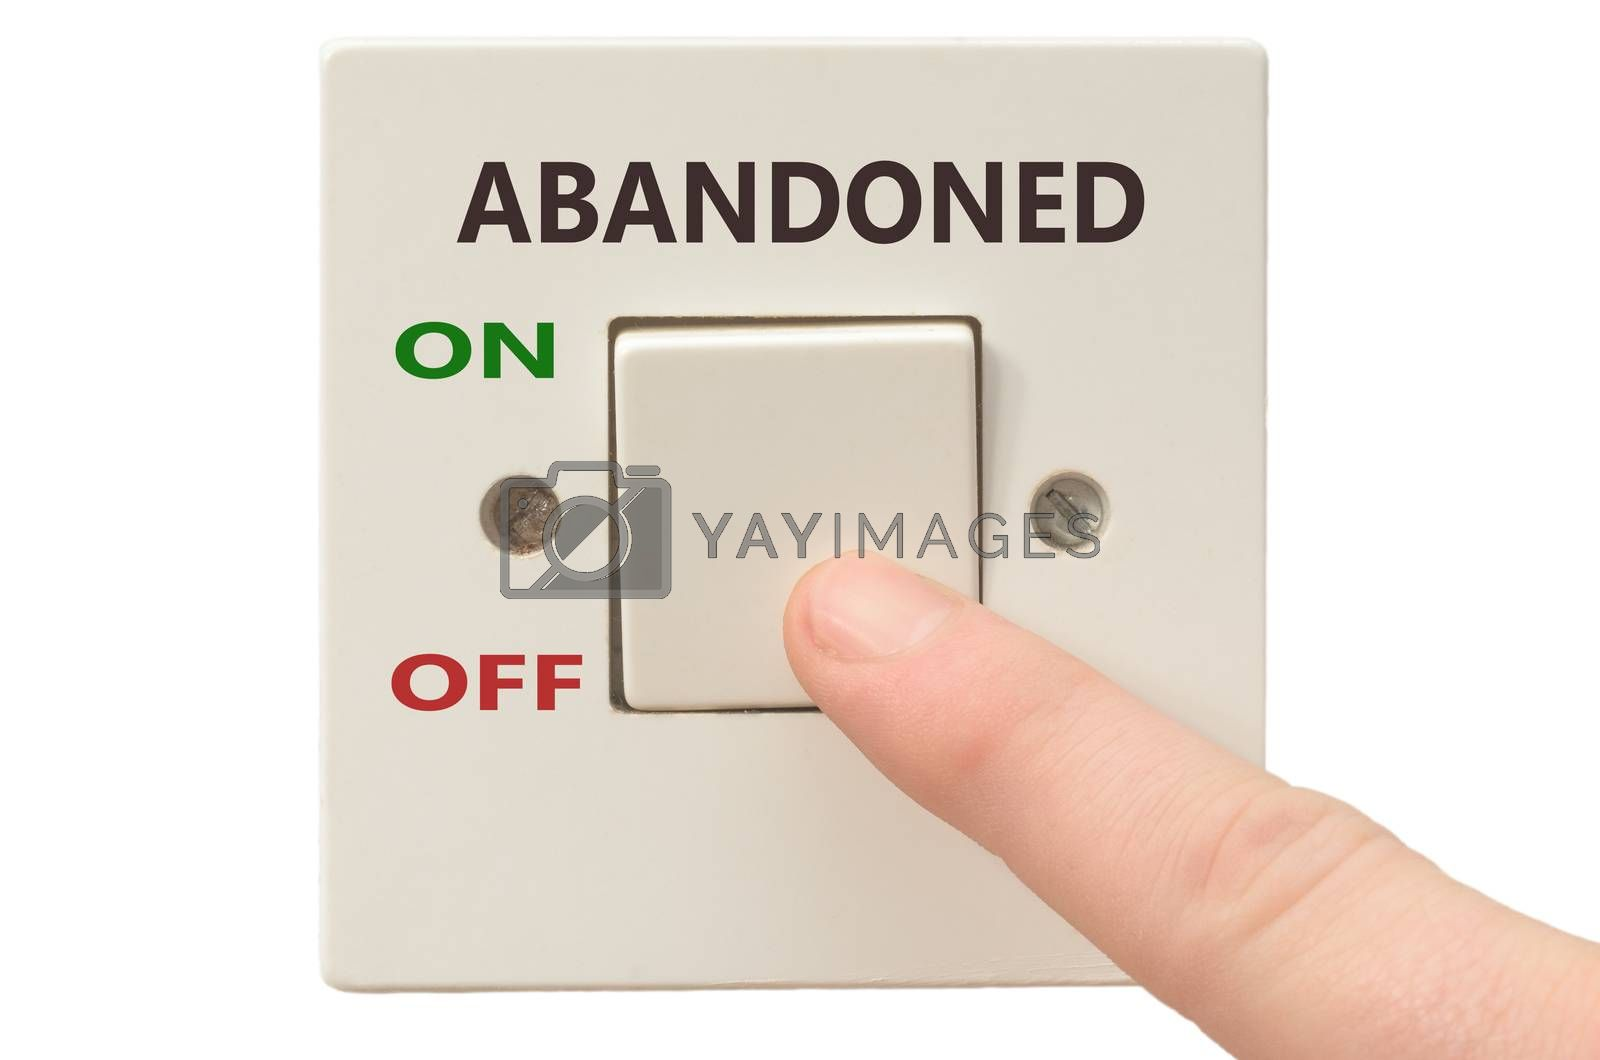 Turning off Abandoned with finger on electrical switch